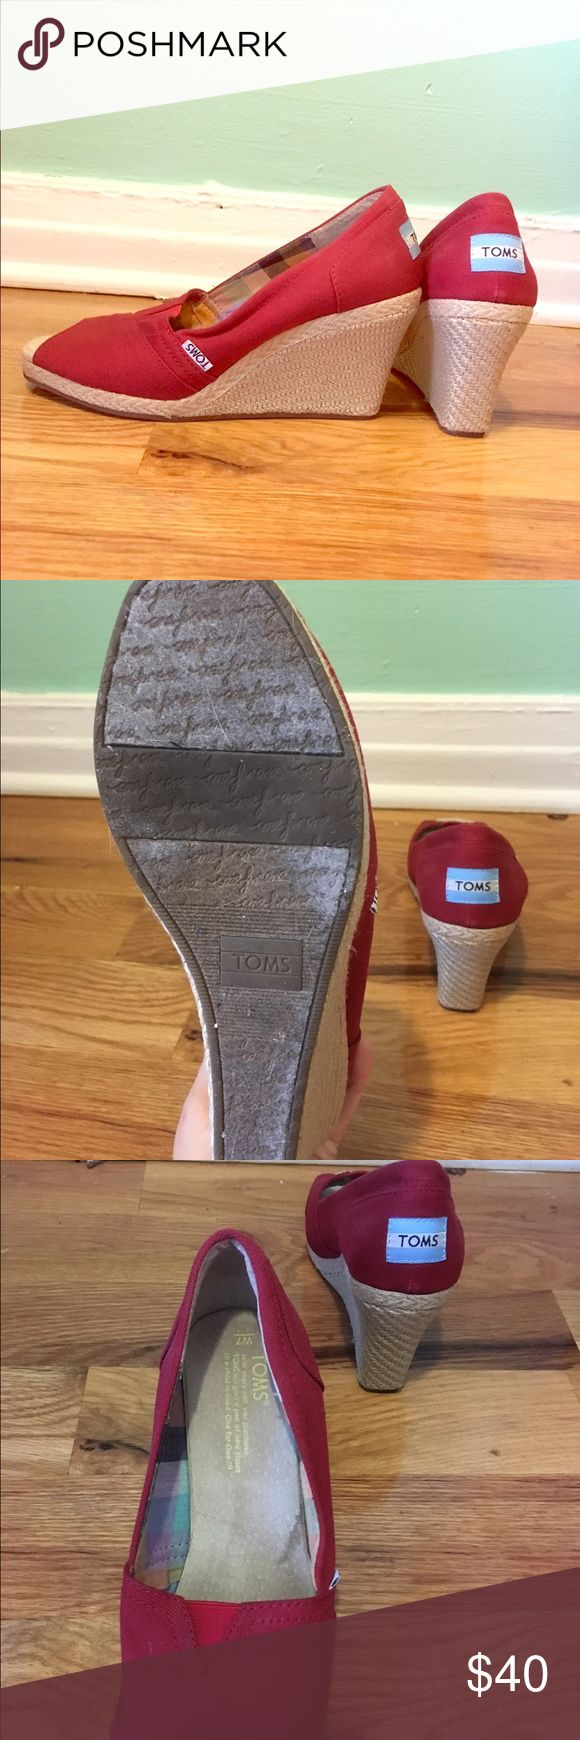 Red Toms wedges size W7 These canvas red Toms wedges have hardly been worn. Size W7. TOMS Shoes Wedges